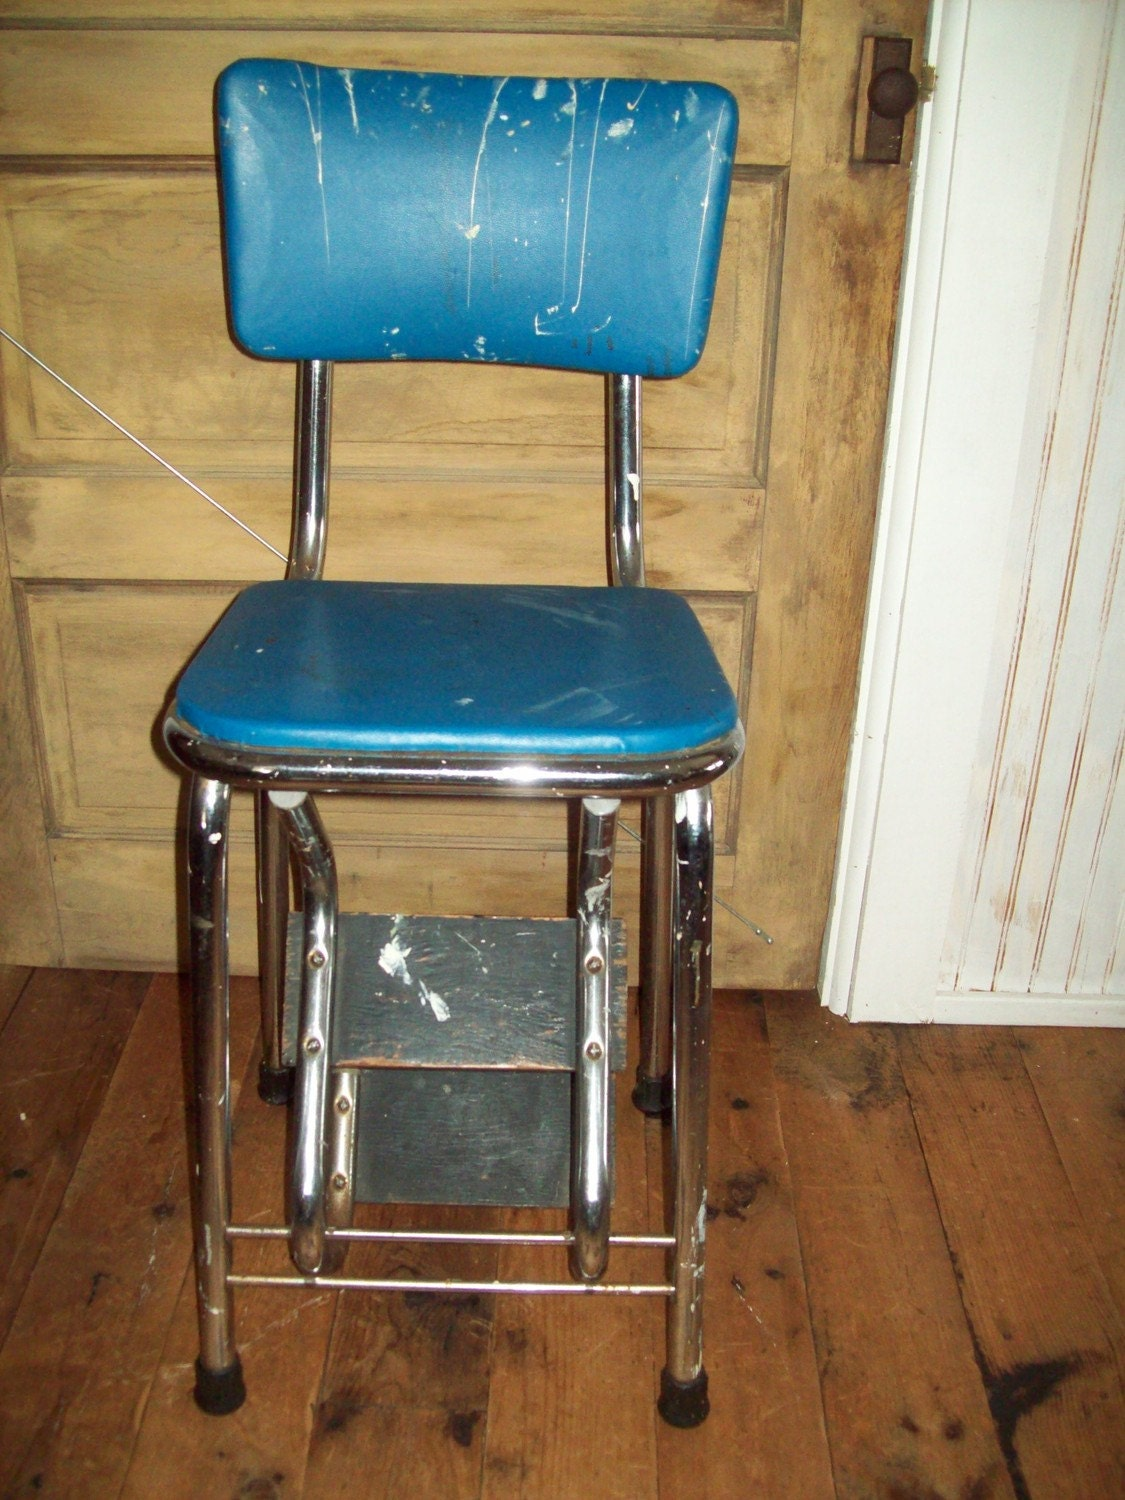 vintage step stool chair. Black Bedroom Furniture Sets. Home Design Ideas